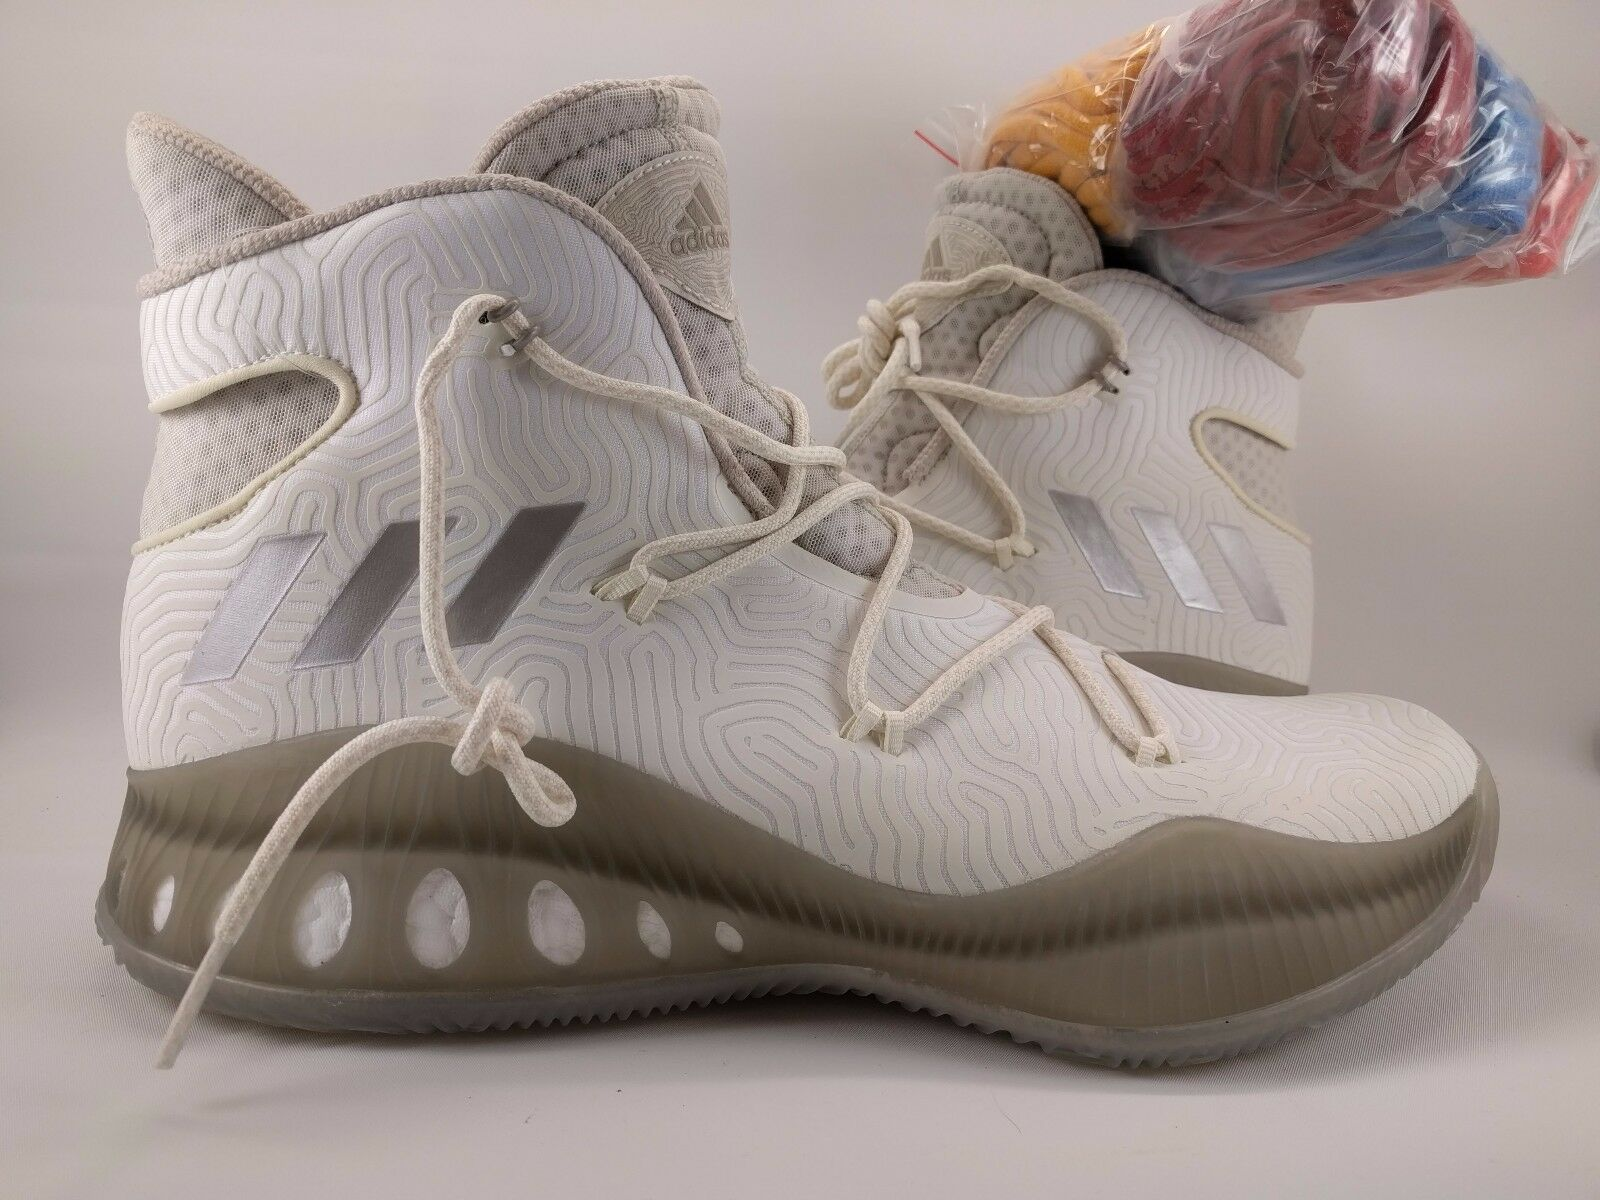 Adidas Crazy Explosive Basketball shoes TB White 14.5 [BY3591] Wiggins Boost pk